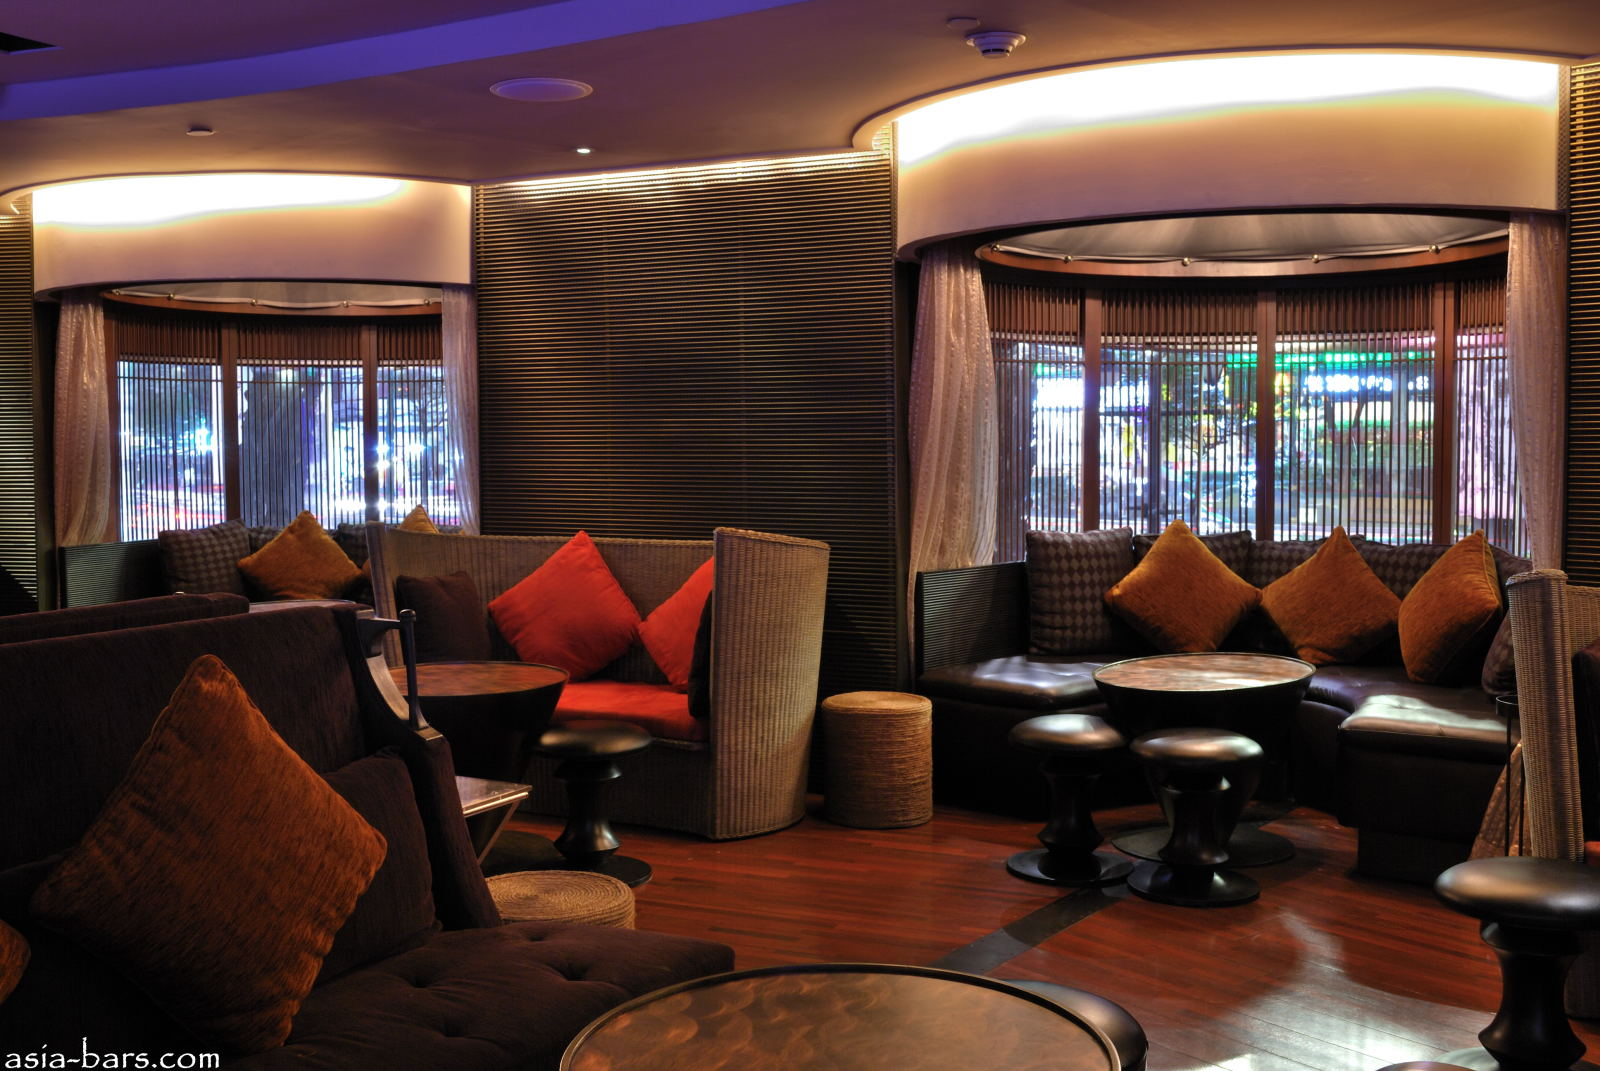 BarSu is a stylish lounge bar / club located within the Sheraton ...